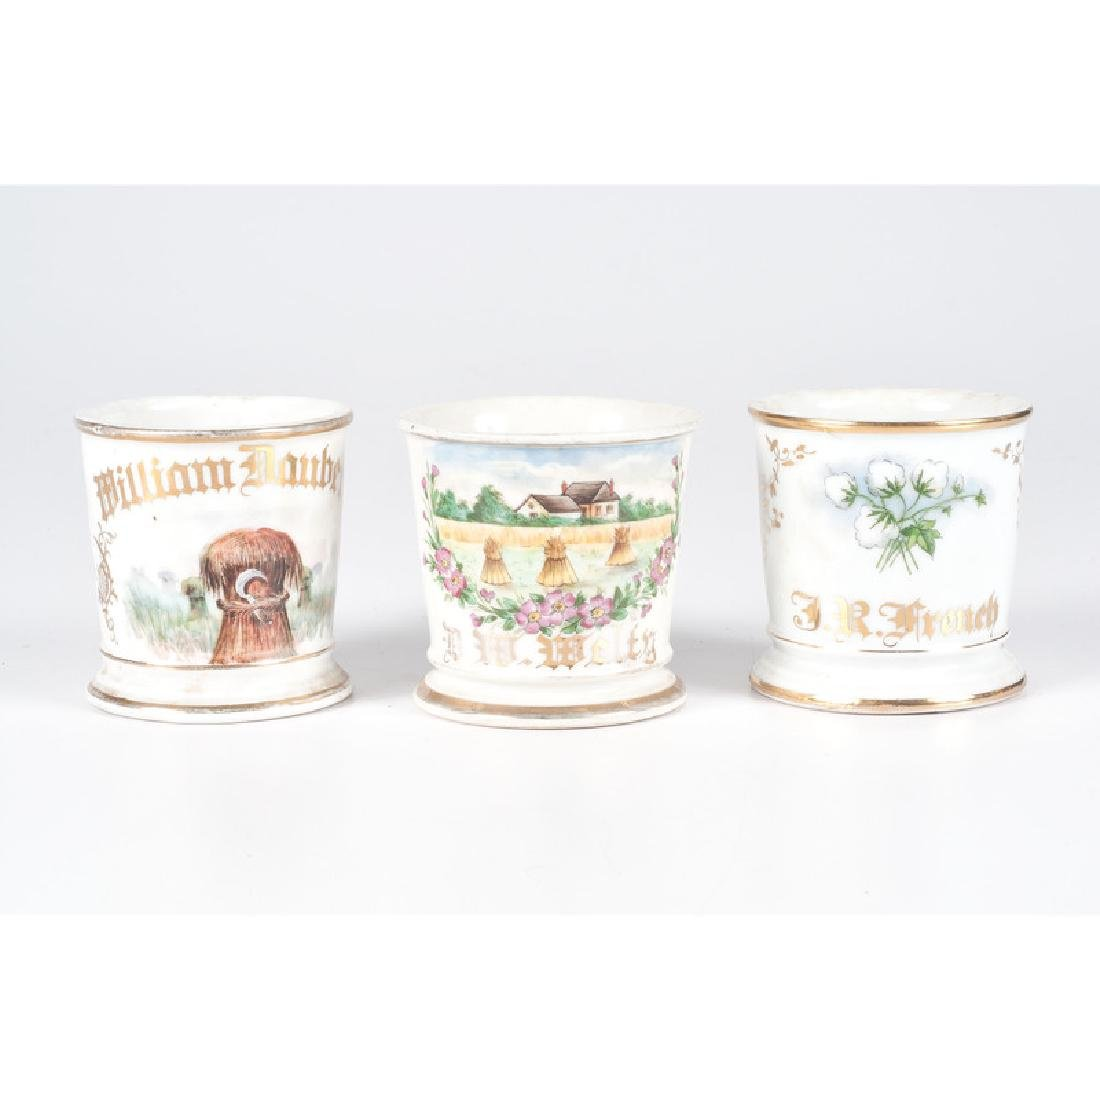 Agricultural Occupational Shaving Mugs